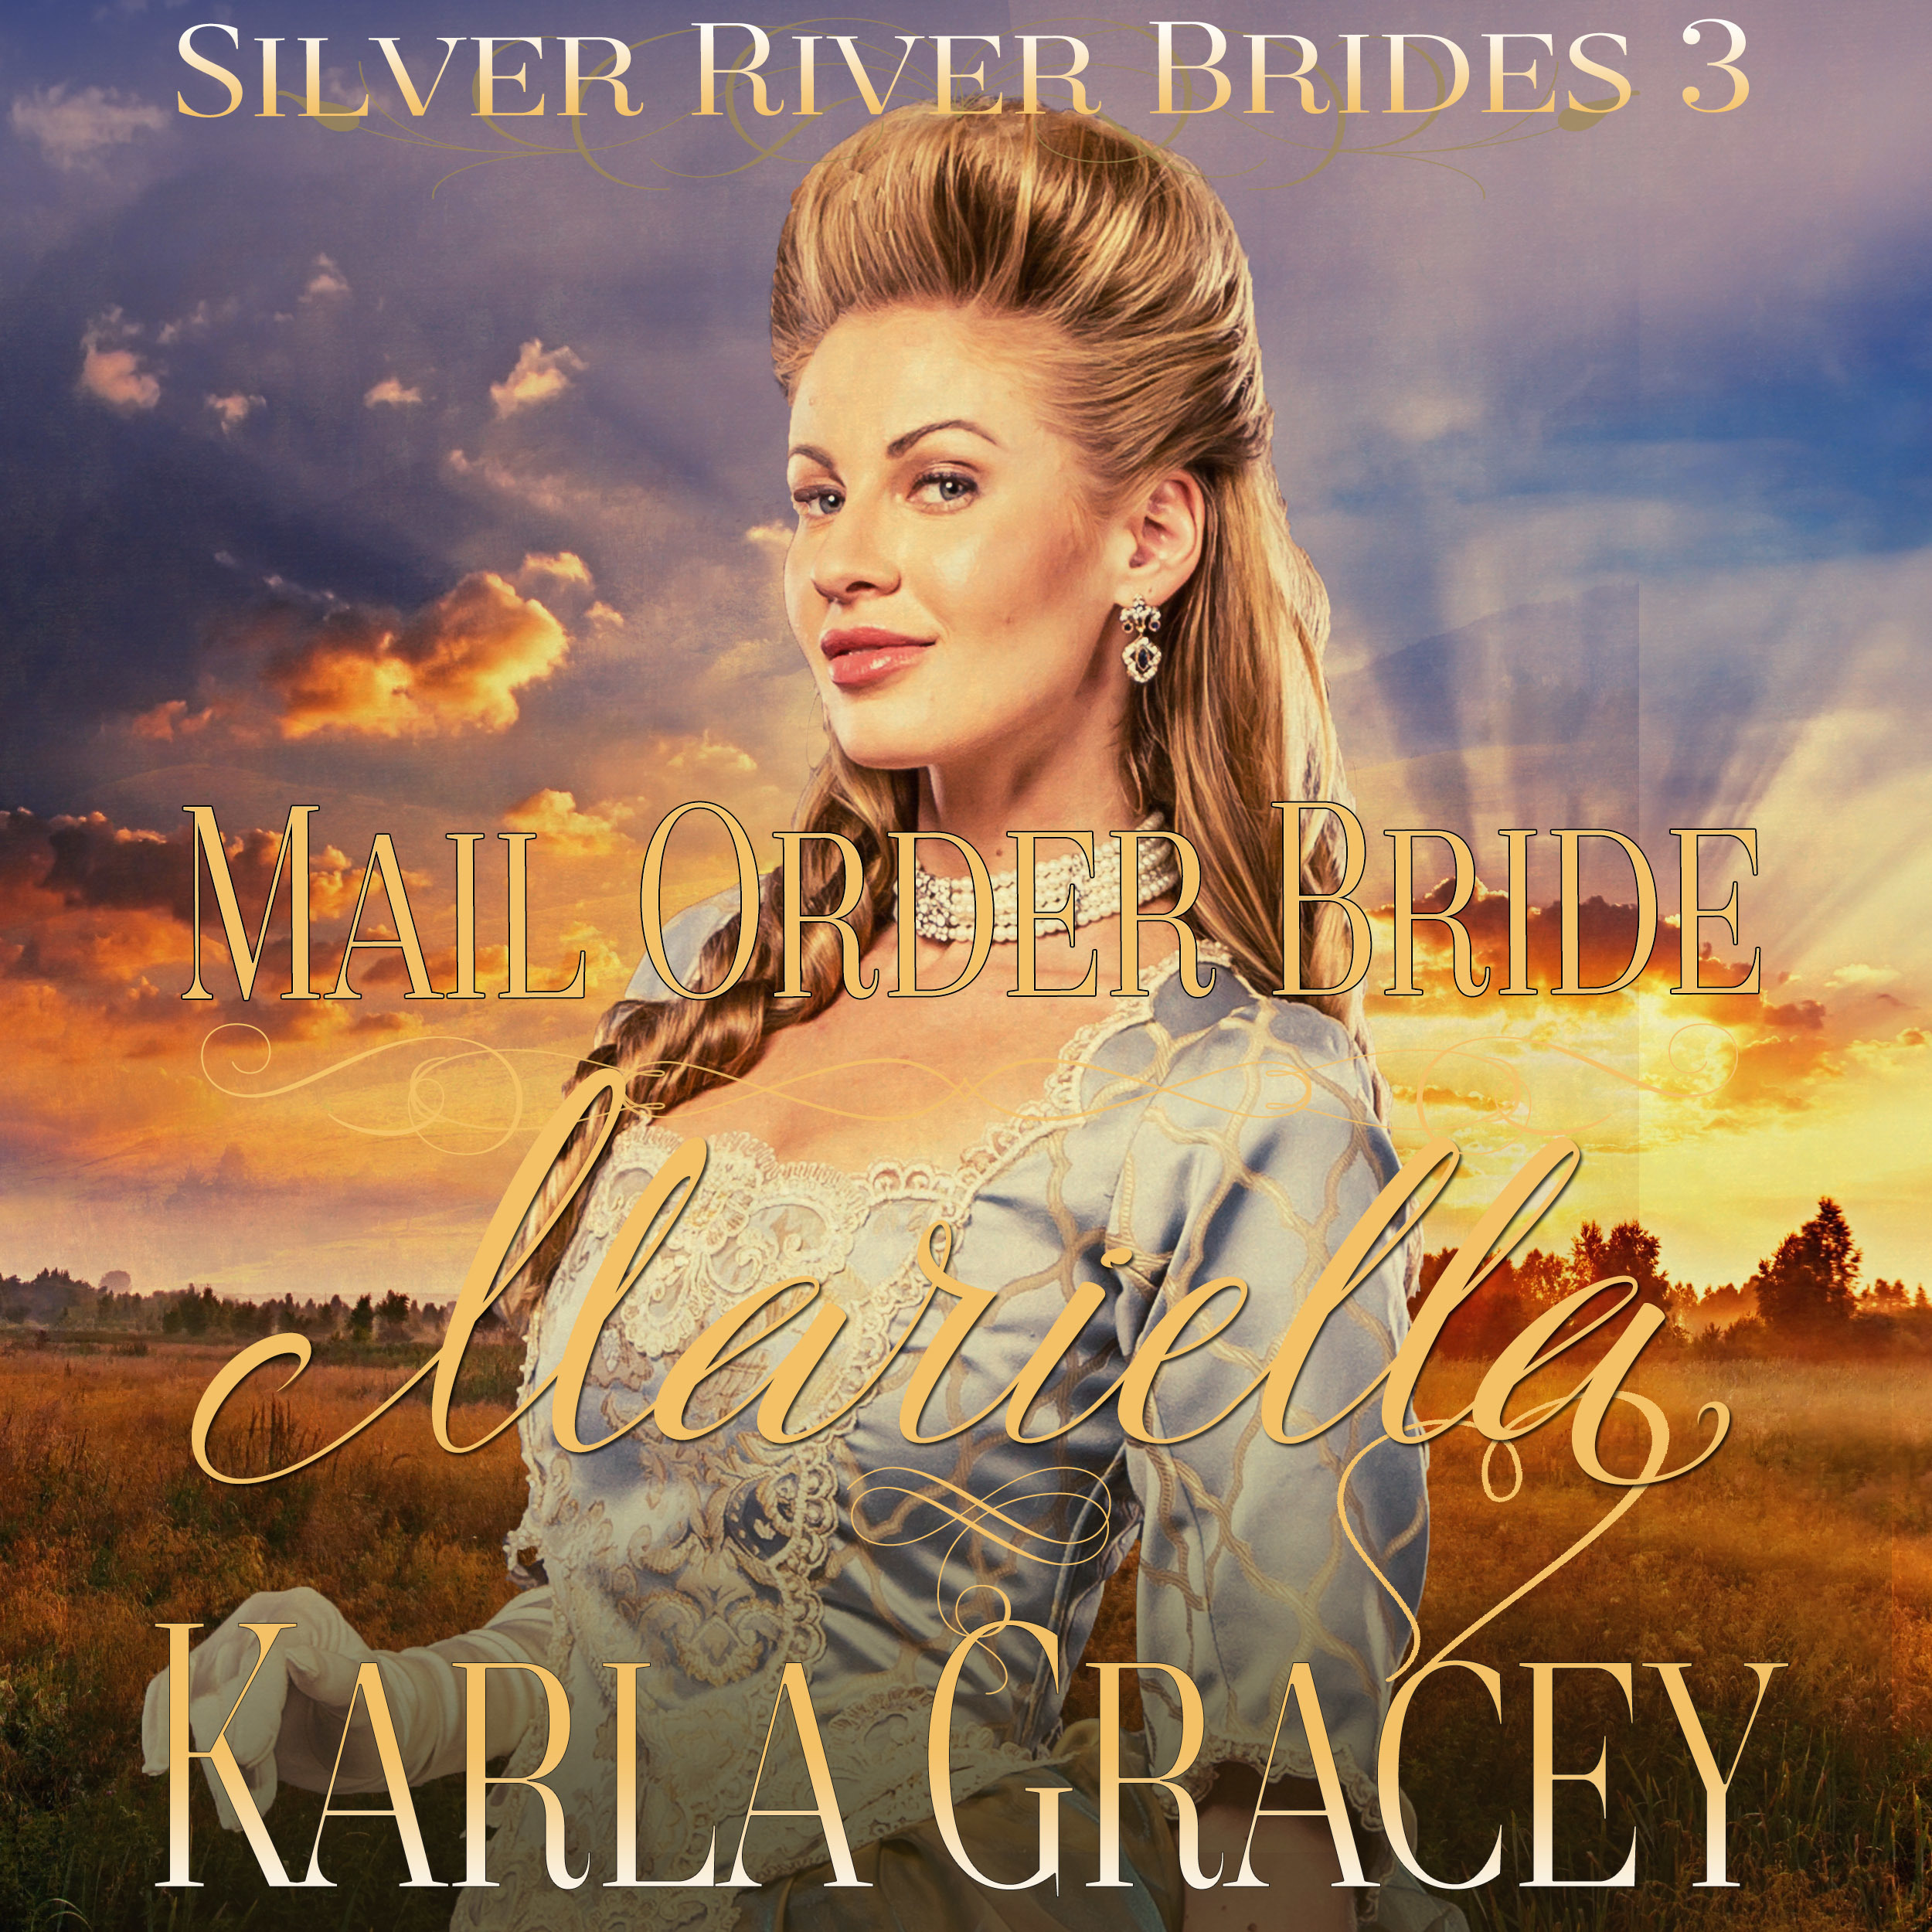 Printable Mail Order Bride Mariella (Silver River Brides, Book 3) Audiobook Cover Art